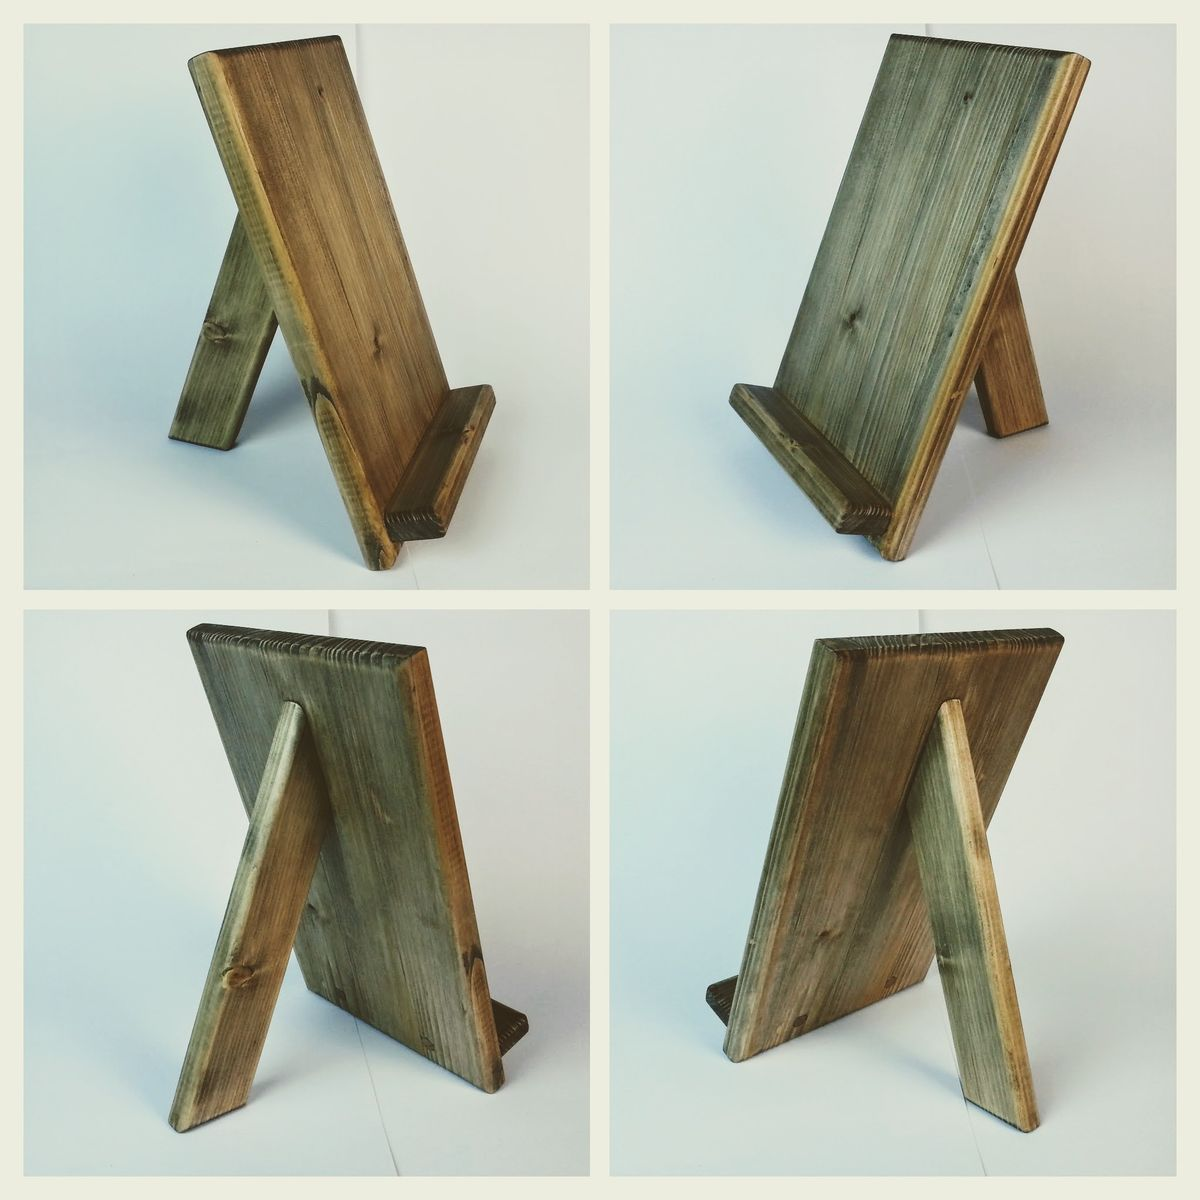 Pin by Carly Suzanne on Home | Wood diy, Wood ipad stand ...